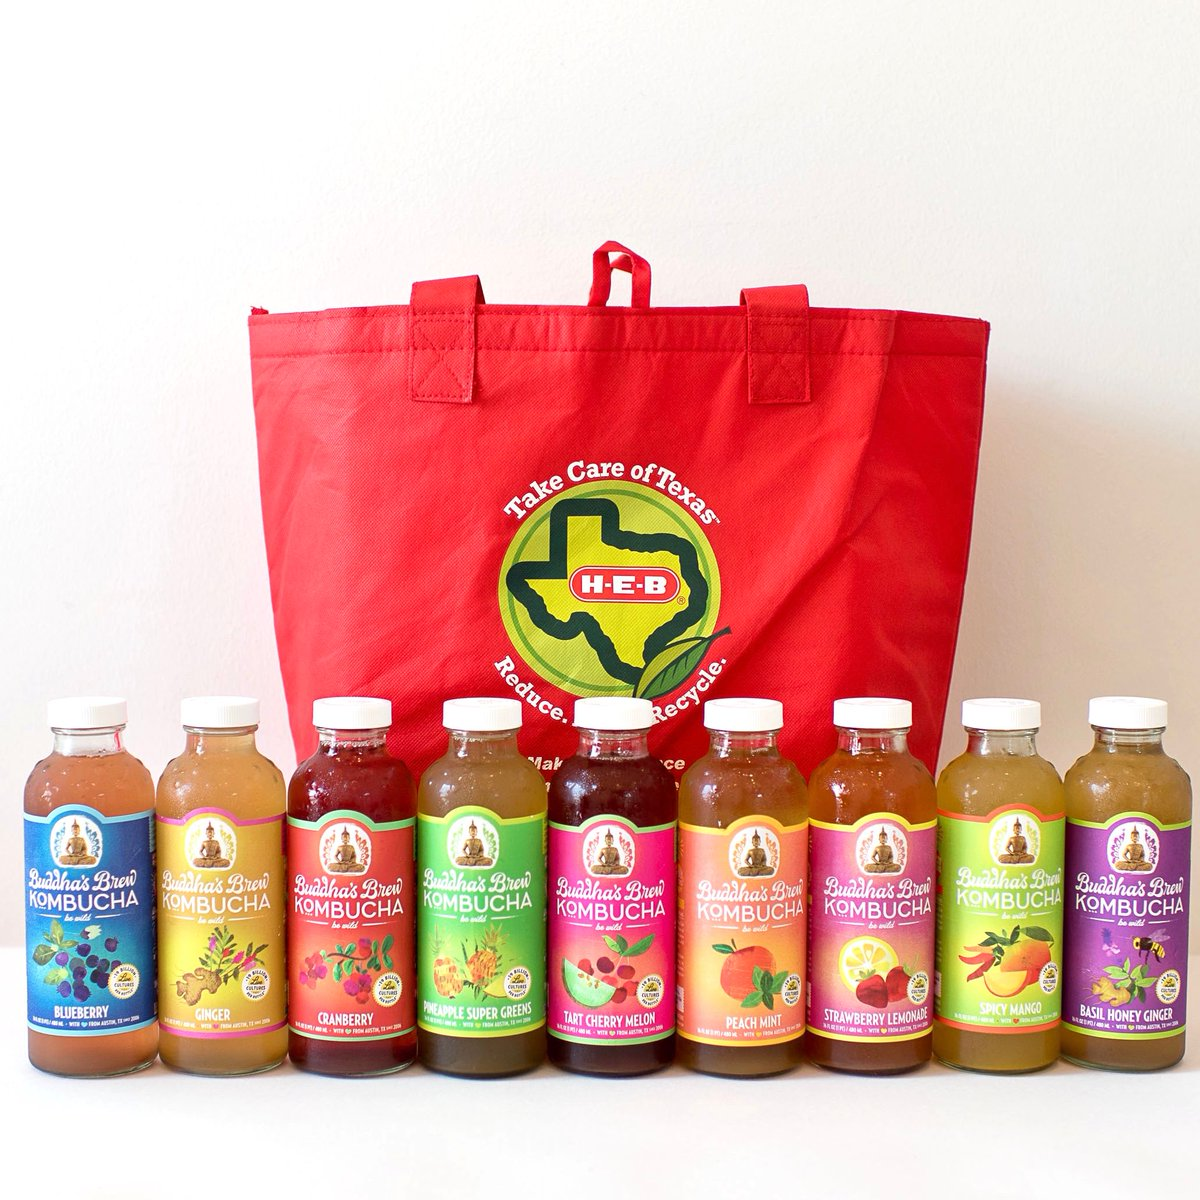 Texas strong! Here are all the flavors your favorite HEB will carry; ask them to carry your favorites if you don't see it in the case! We love you @HEB #HEB #ShopLocal #HEBATX #Kombucha #Groceries #LocalShopping #LocalLove #Austin #AustinFlavor #BestOf #HealthyLiving #ShopSafepic.twitter.com/mDOur1tpQT